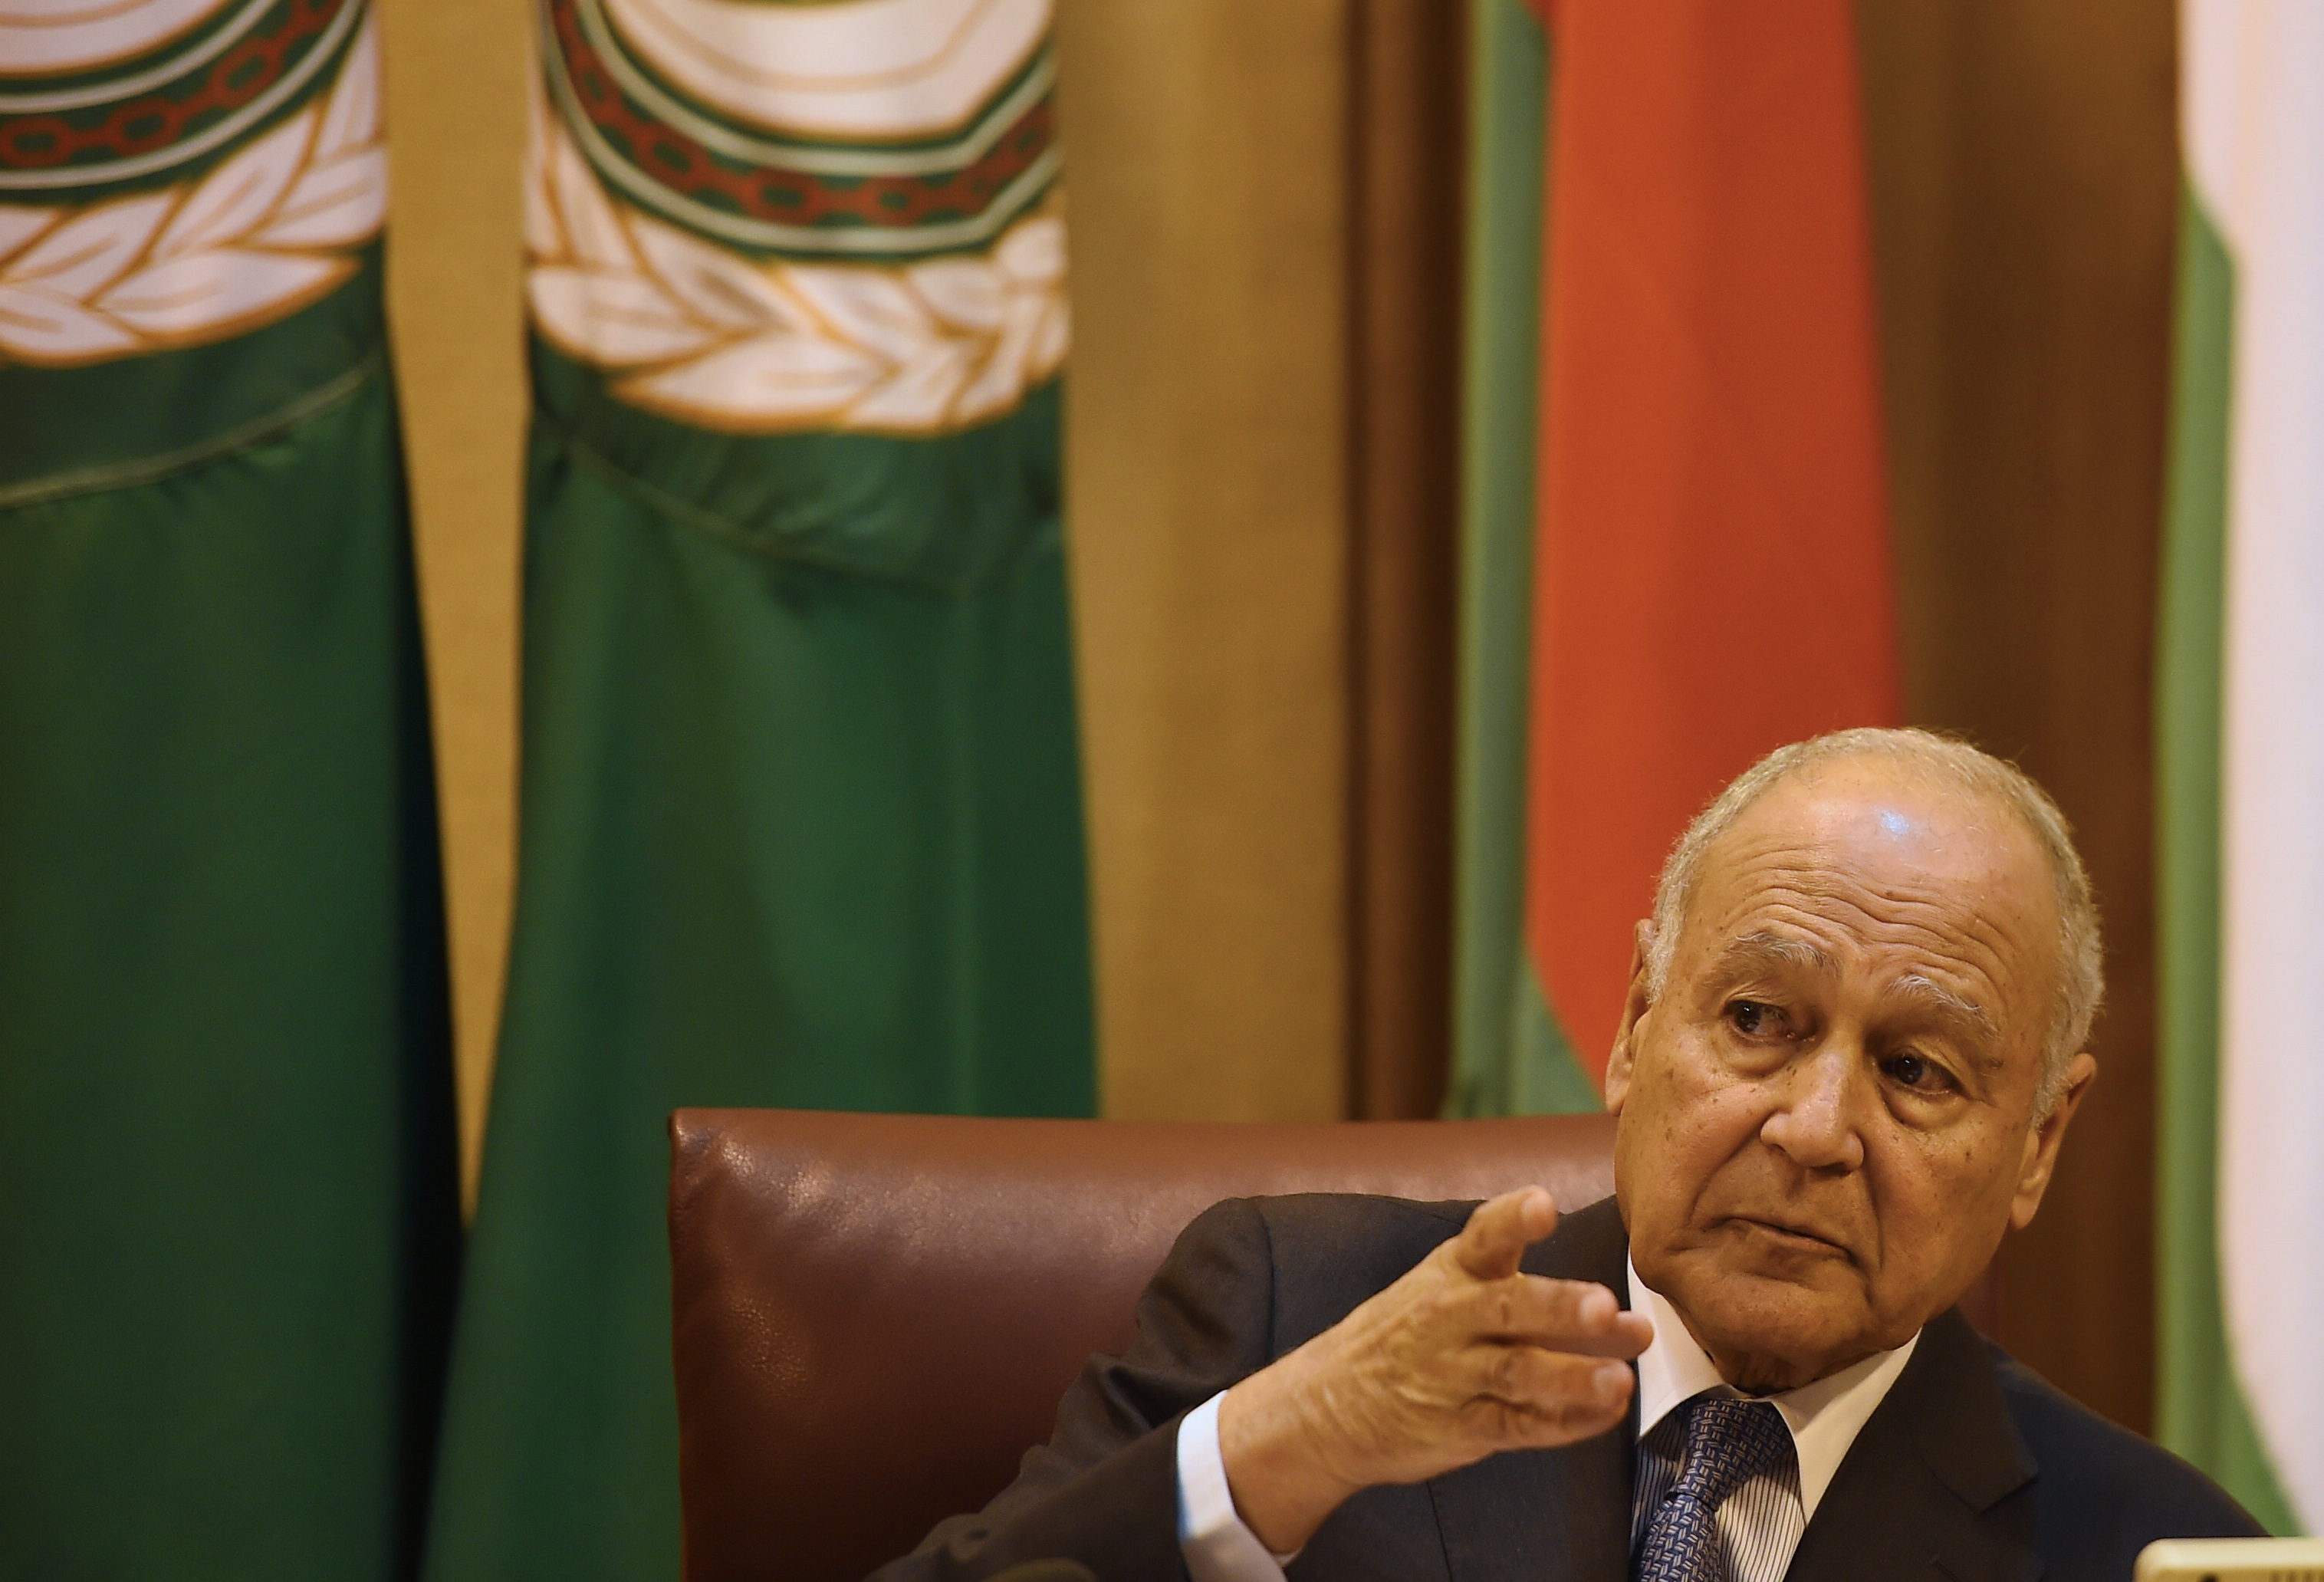 Arab League Secretary General Ahmed Abul Gheit addresses a meeting of the Arab League member states at the grouping's headquarters in the Egyptian capital of Cairo to discuss the latest developments in the Palestinian territories on April 21, 2019. (MOHAMED EL-SHAHED/AFP/Getty Images)